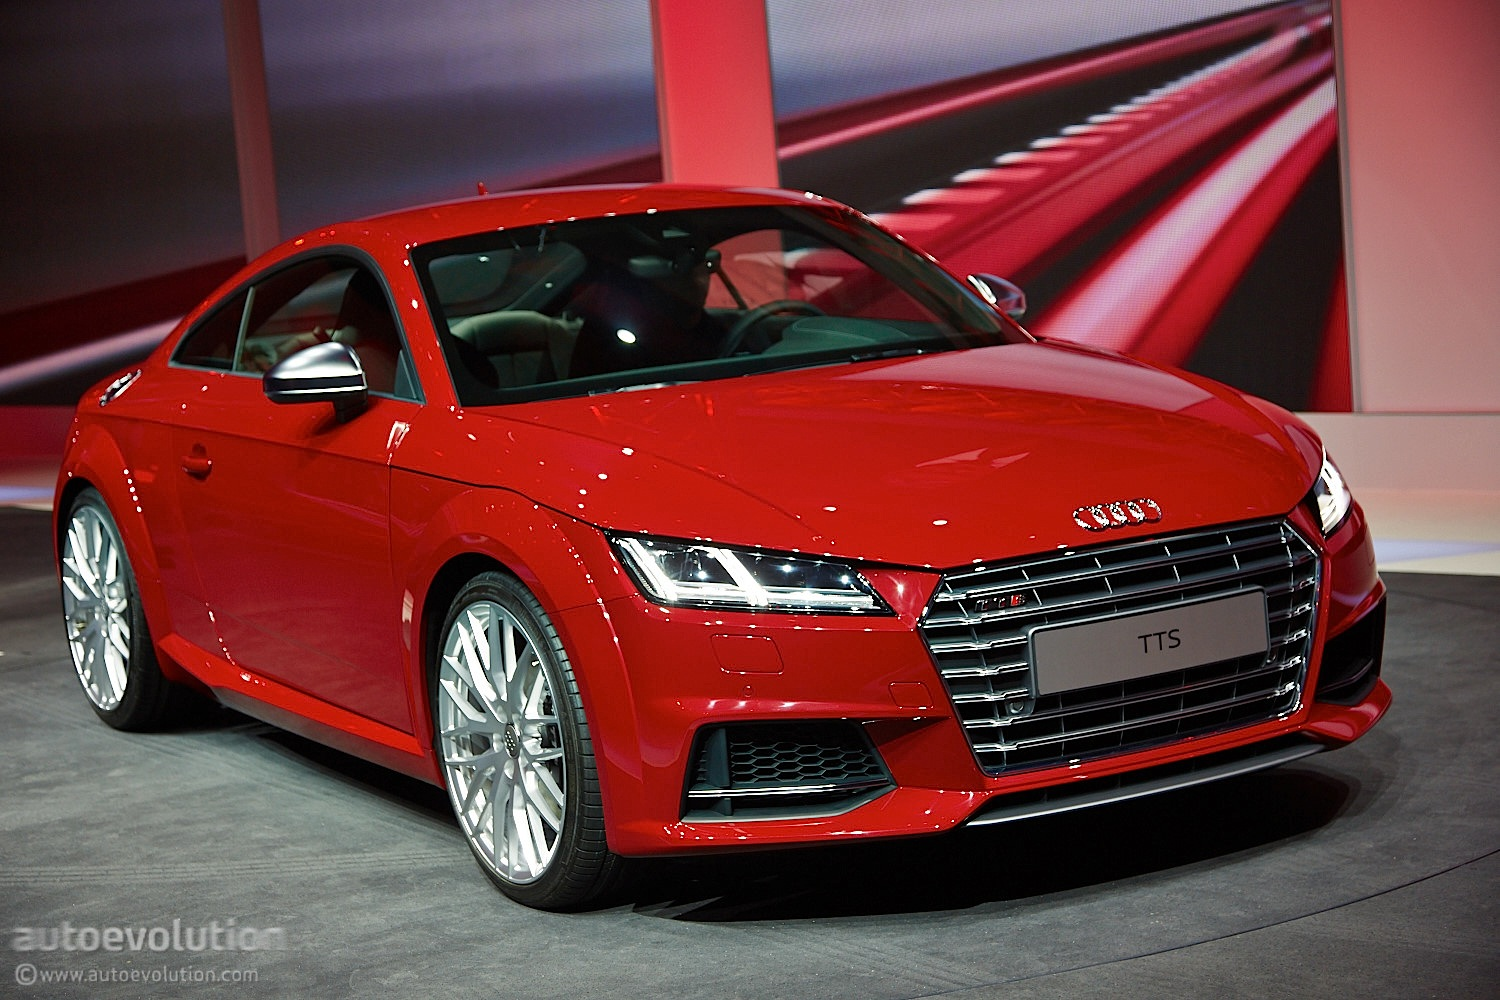 New Audi Tts Priced At 49 100 In Germany The Most